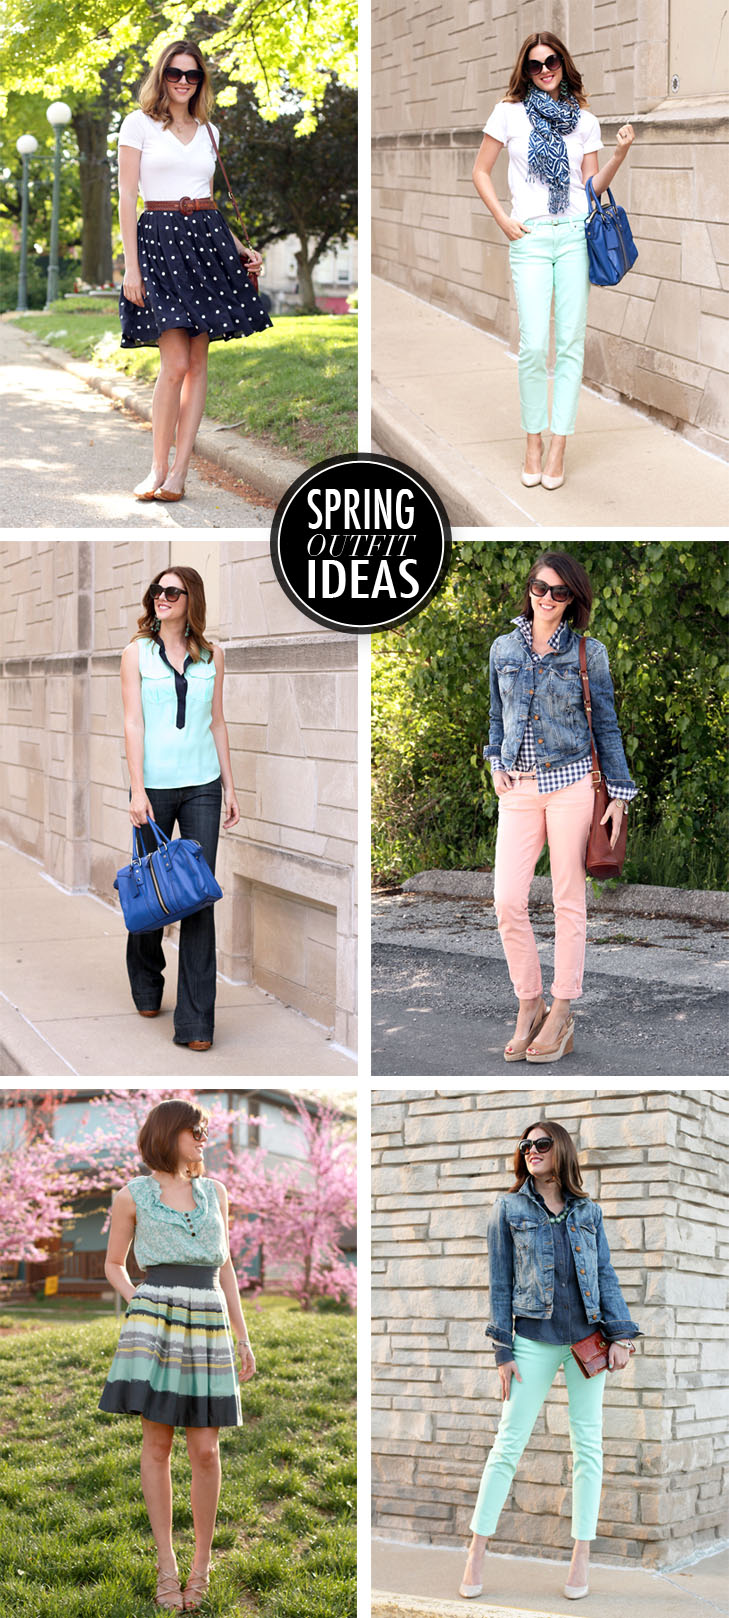 20 Cute Spring Outfit Ideas, @whatiwore